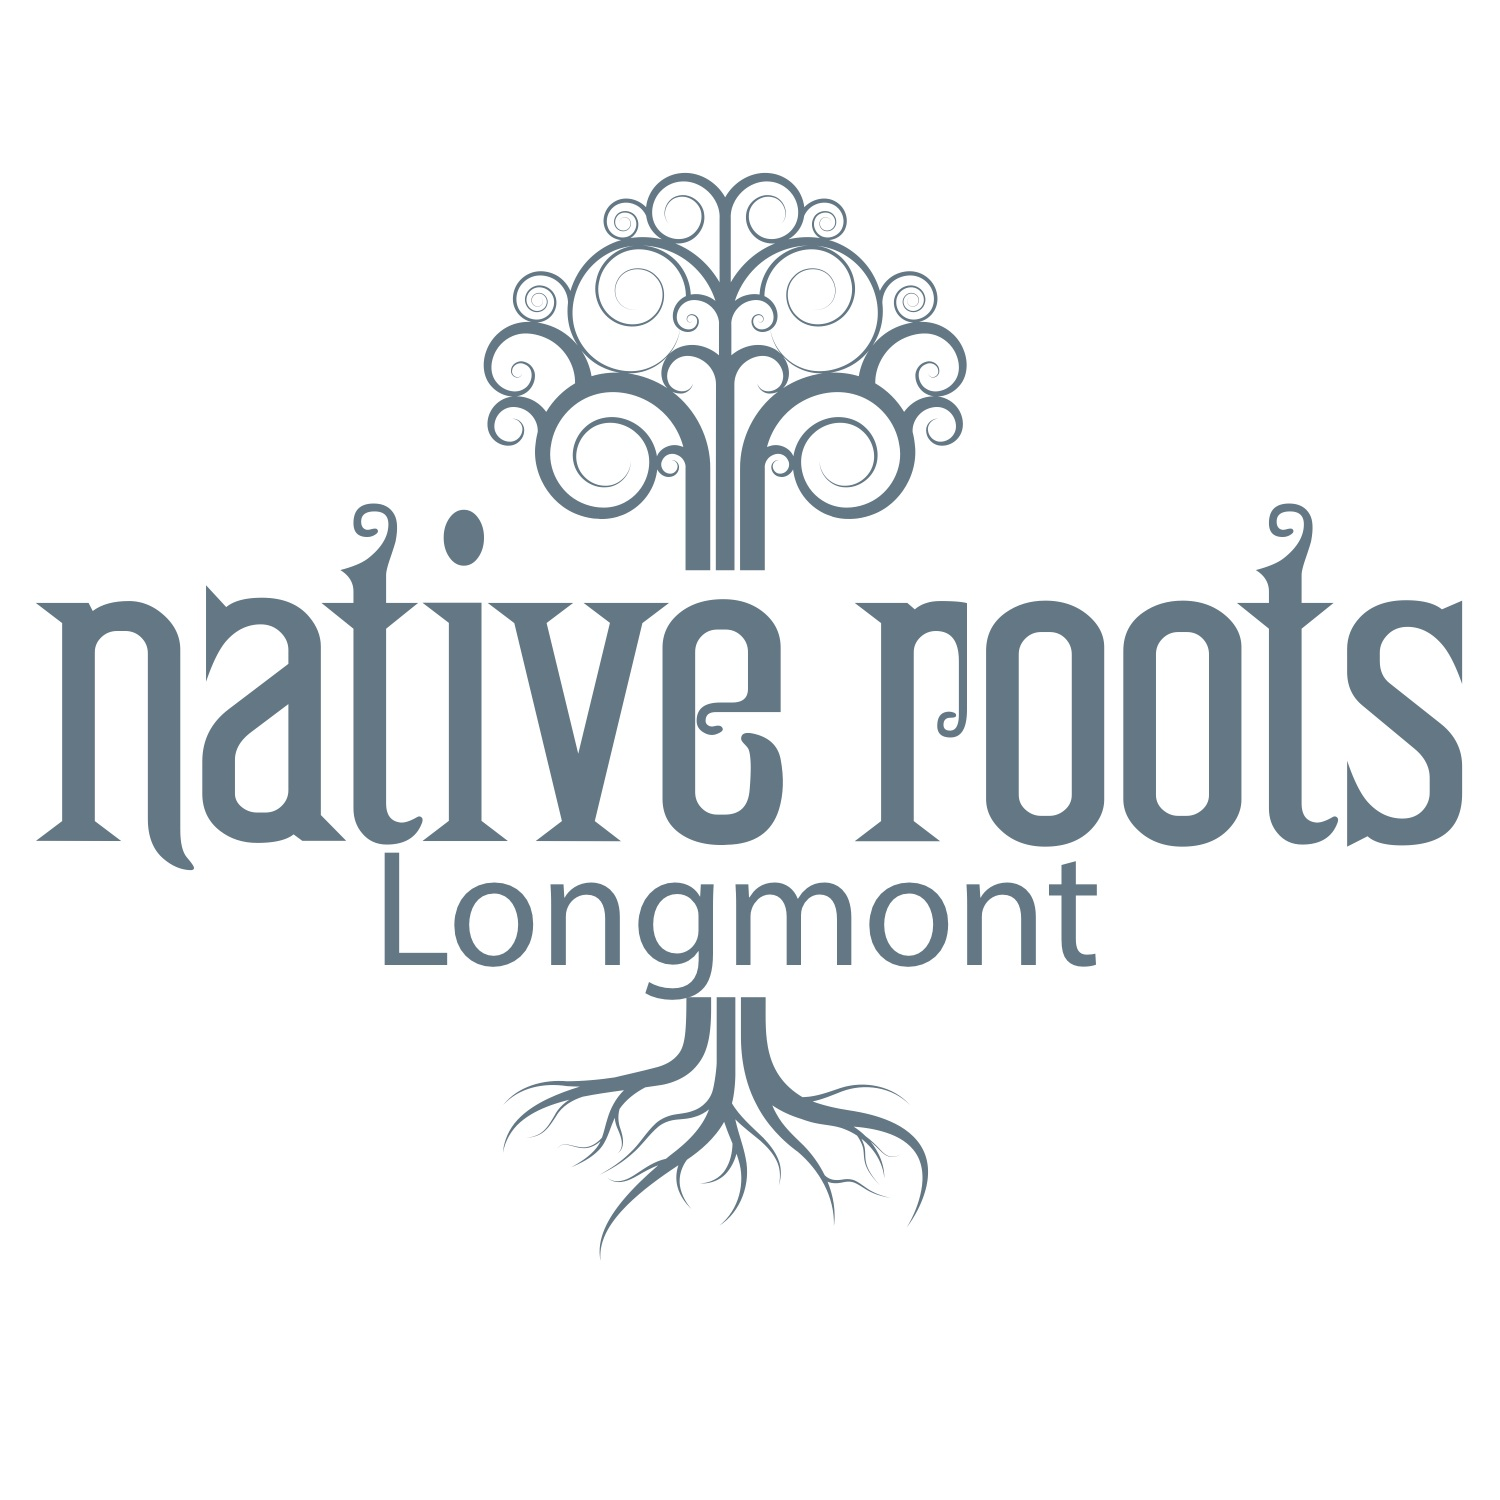 Native Roots Longmont